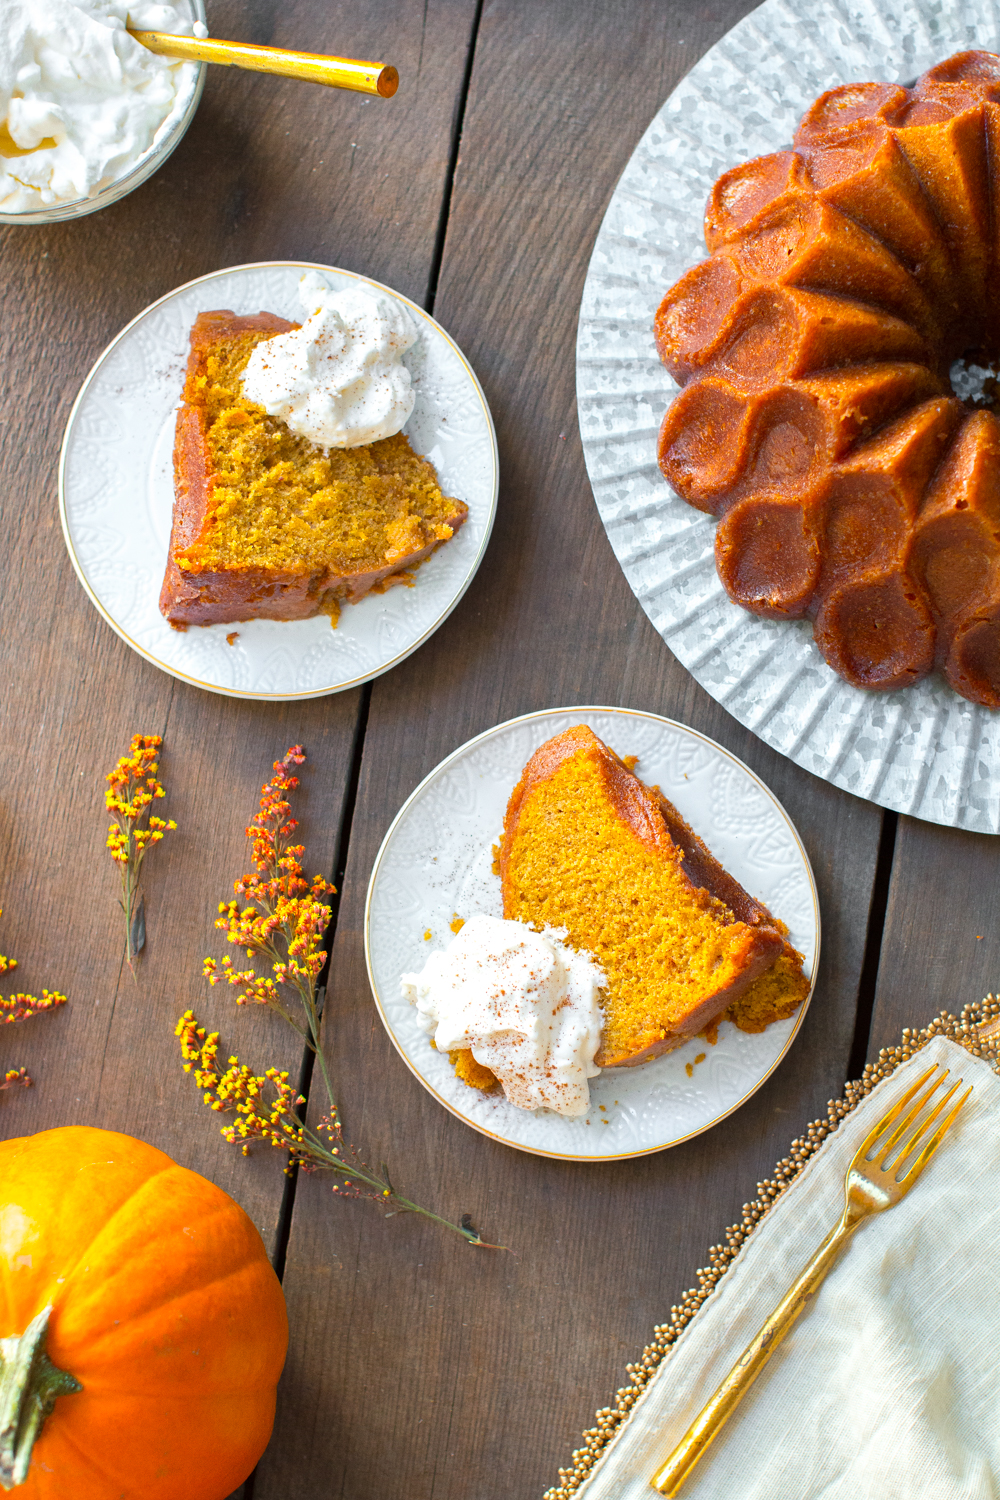 ... whipped cream to top that stunning Pumpkin Spice Brown Butter Bourbon